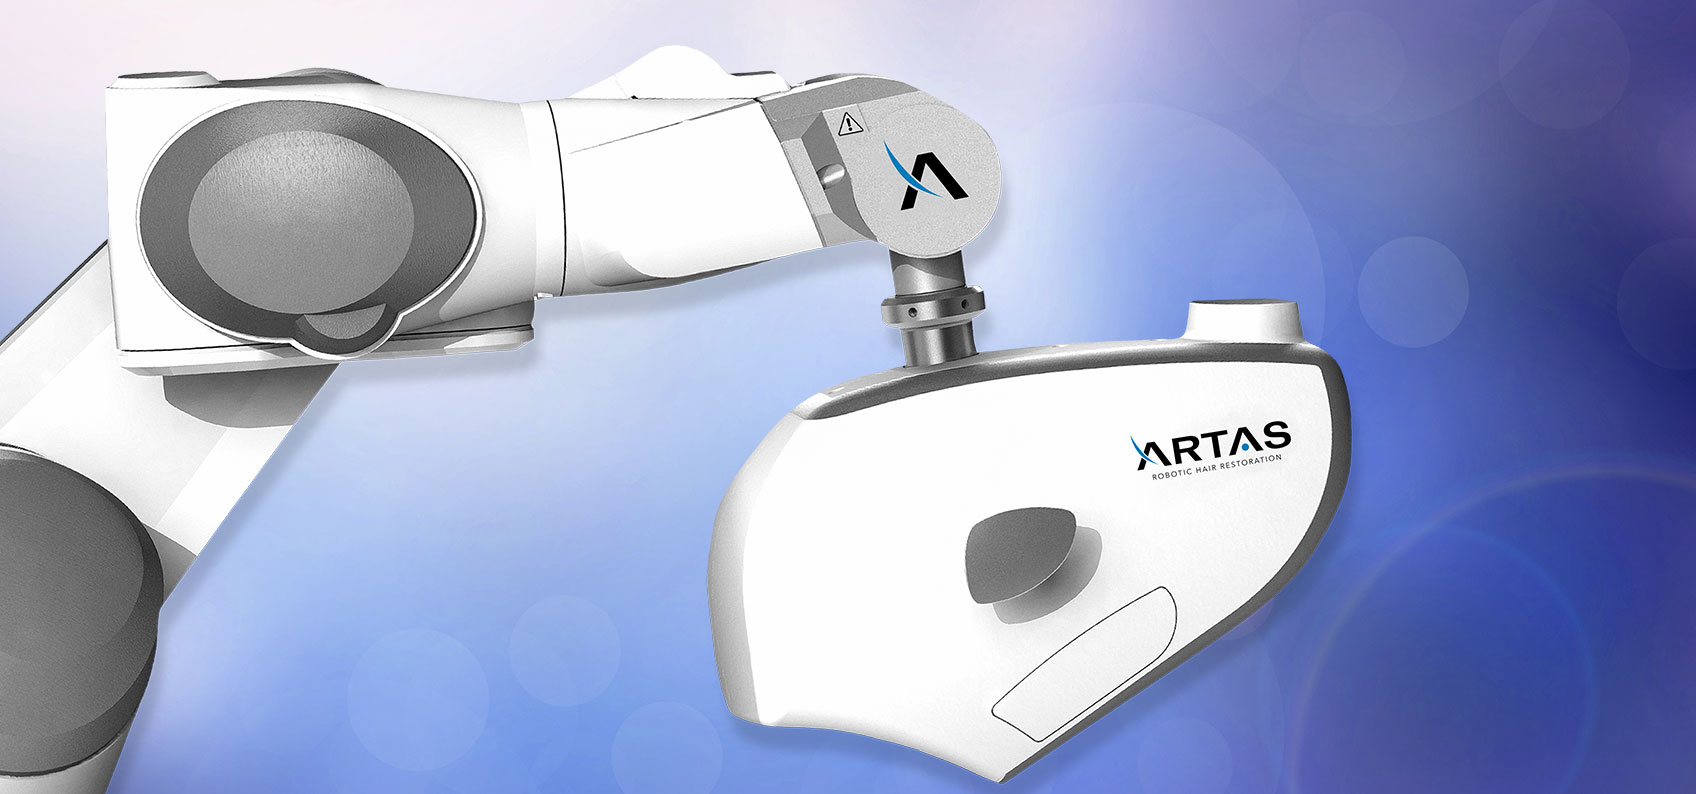 artas system machine header image